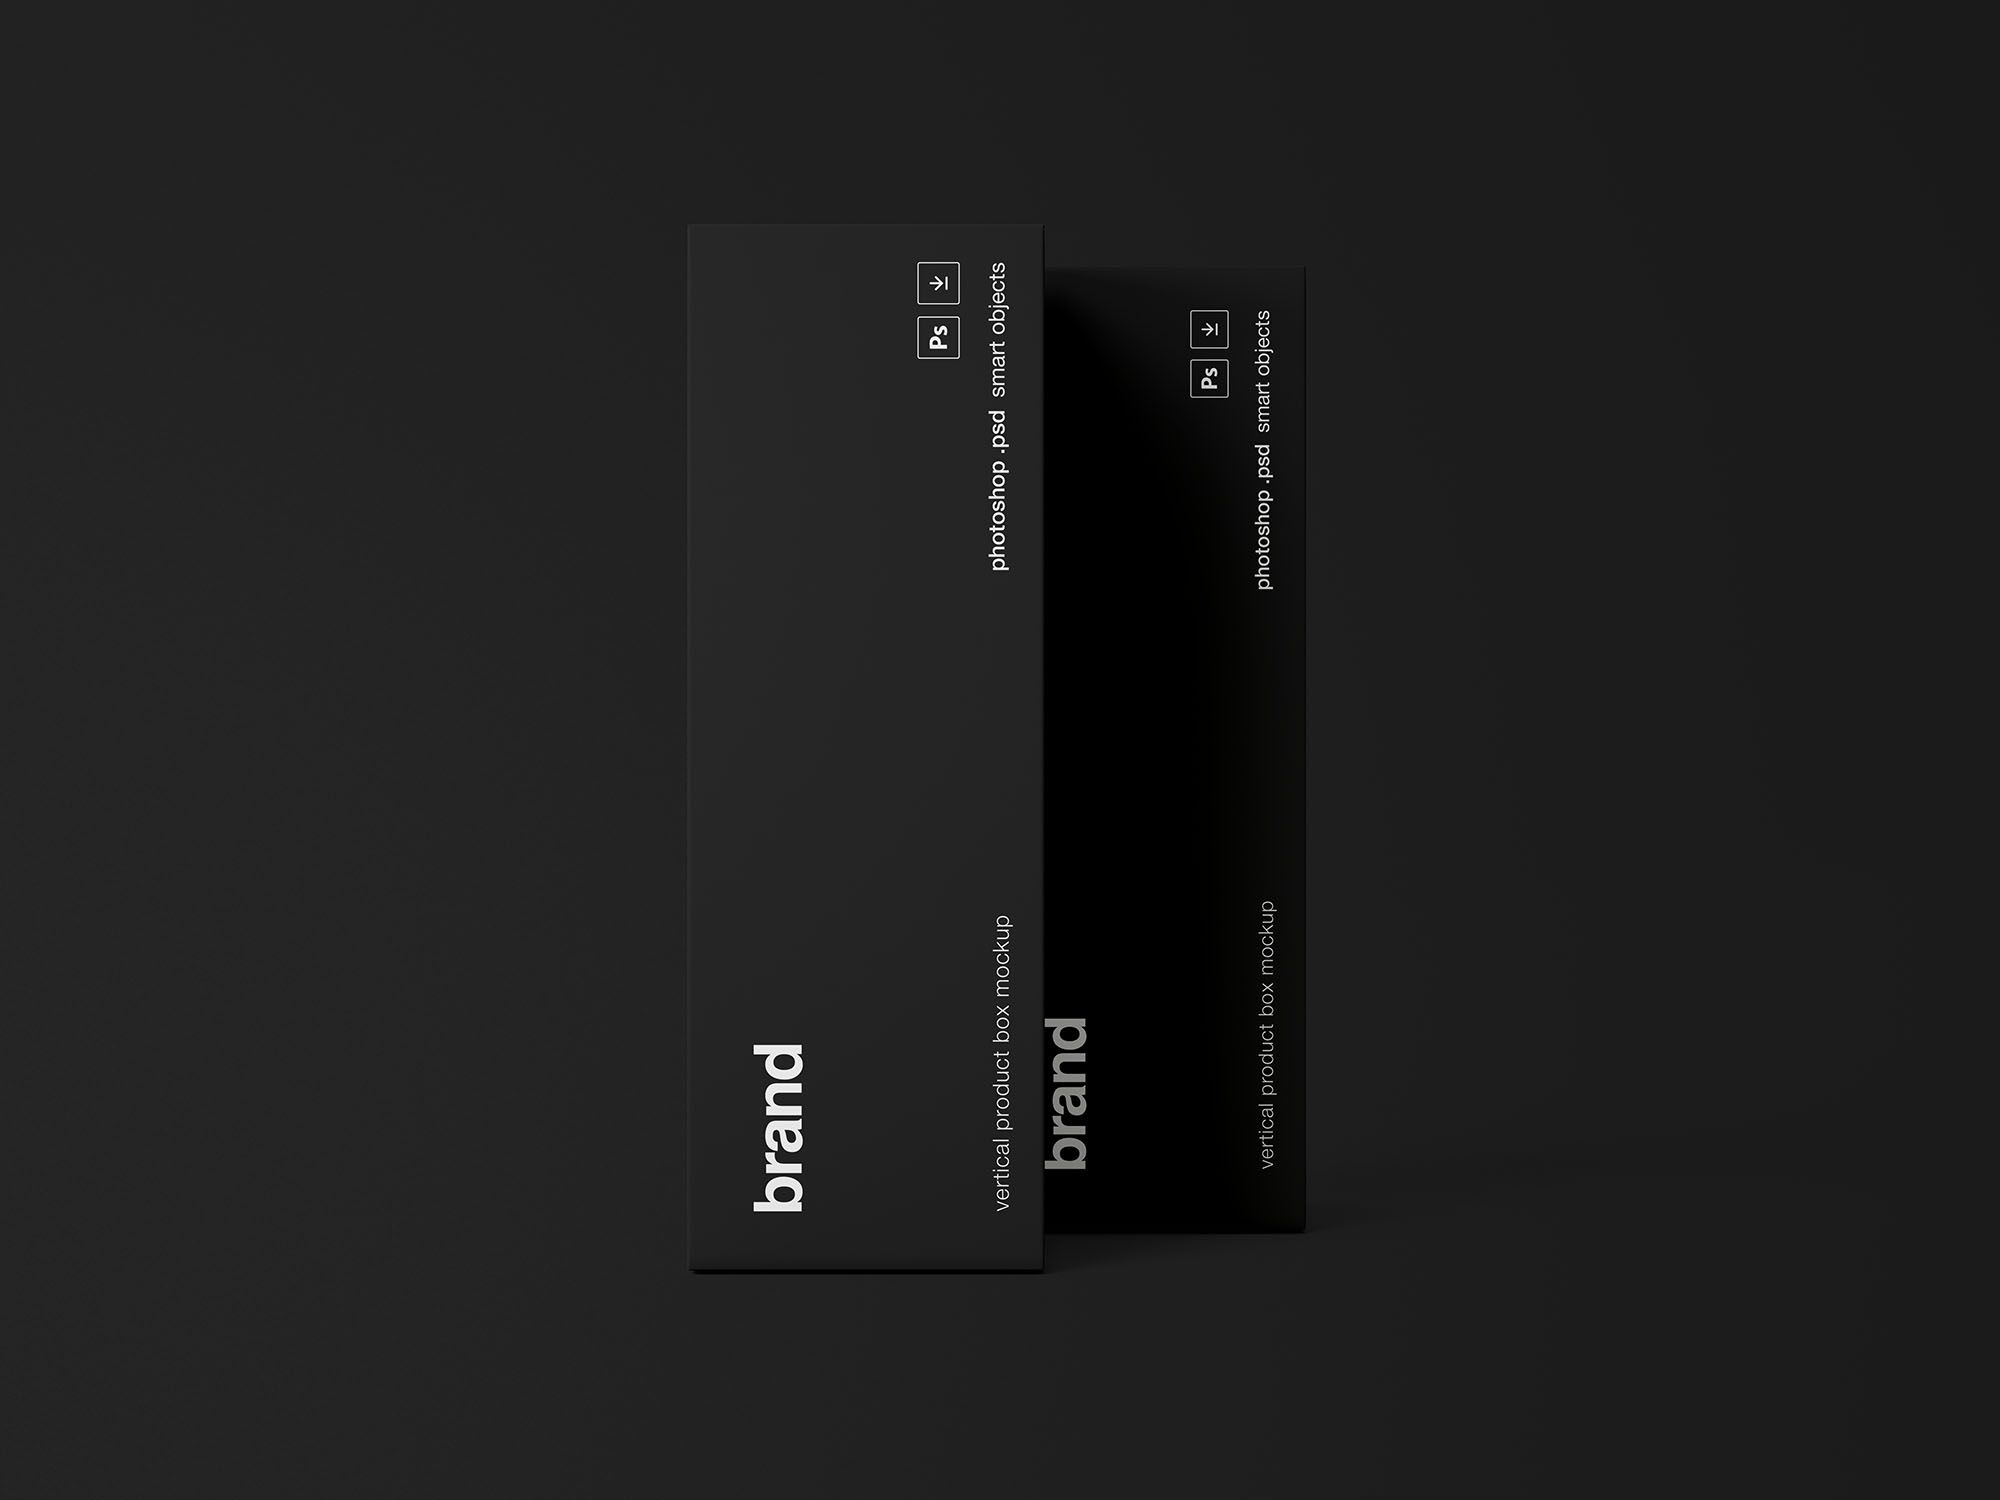 Download Product Box Package Psd Mockup A Set Of 2 Box Mockup Mockup Mockup Psd